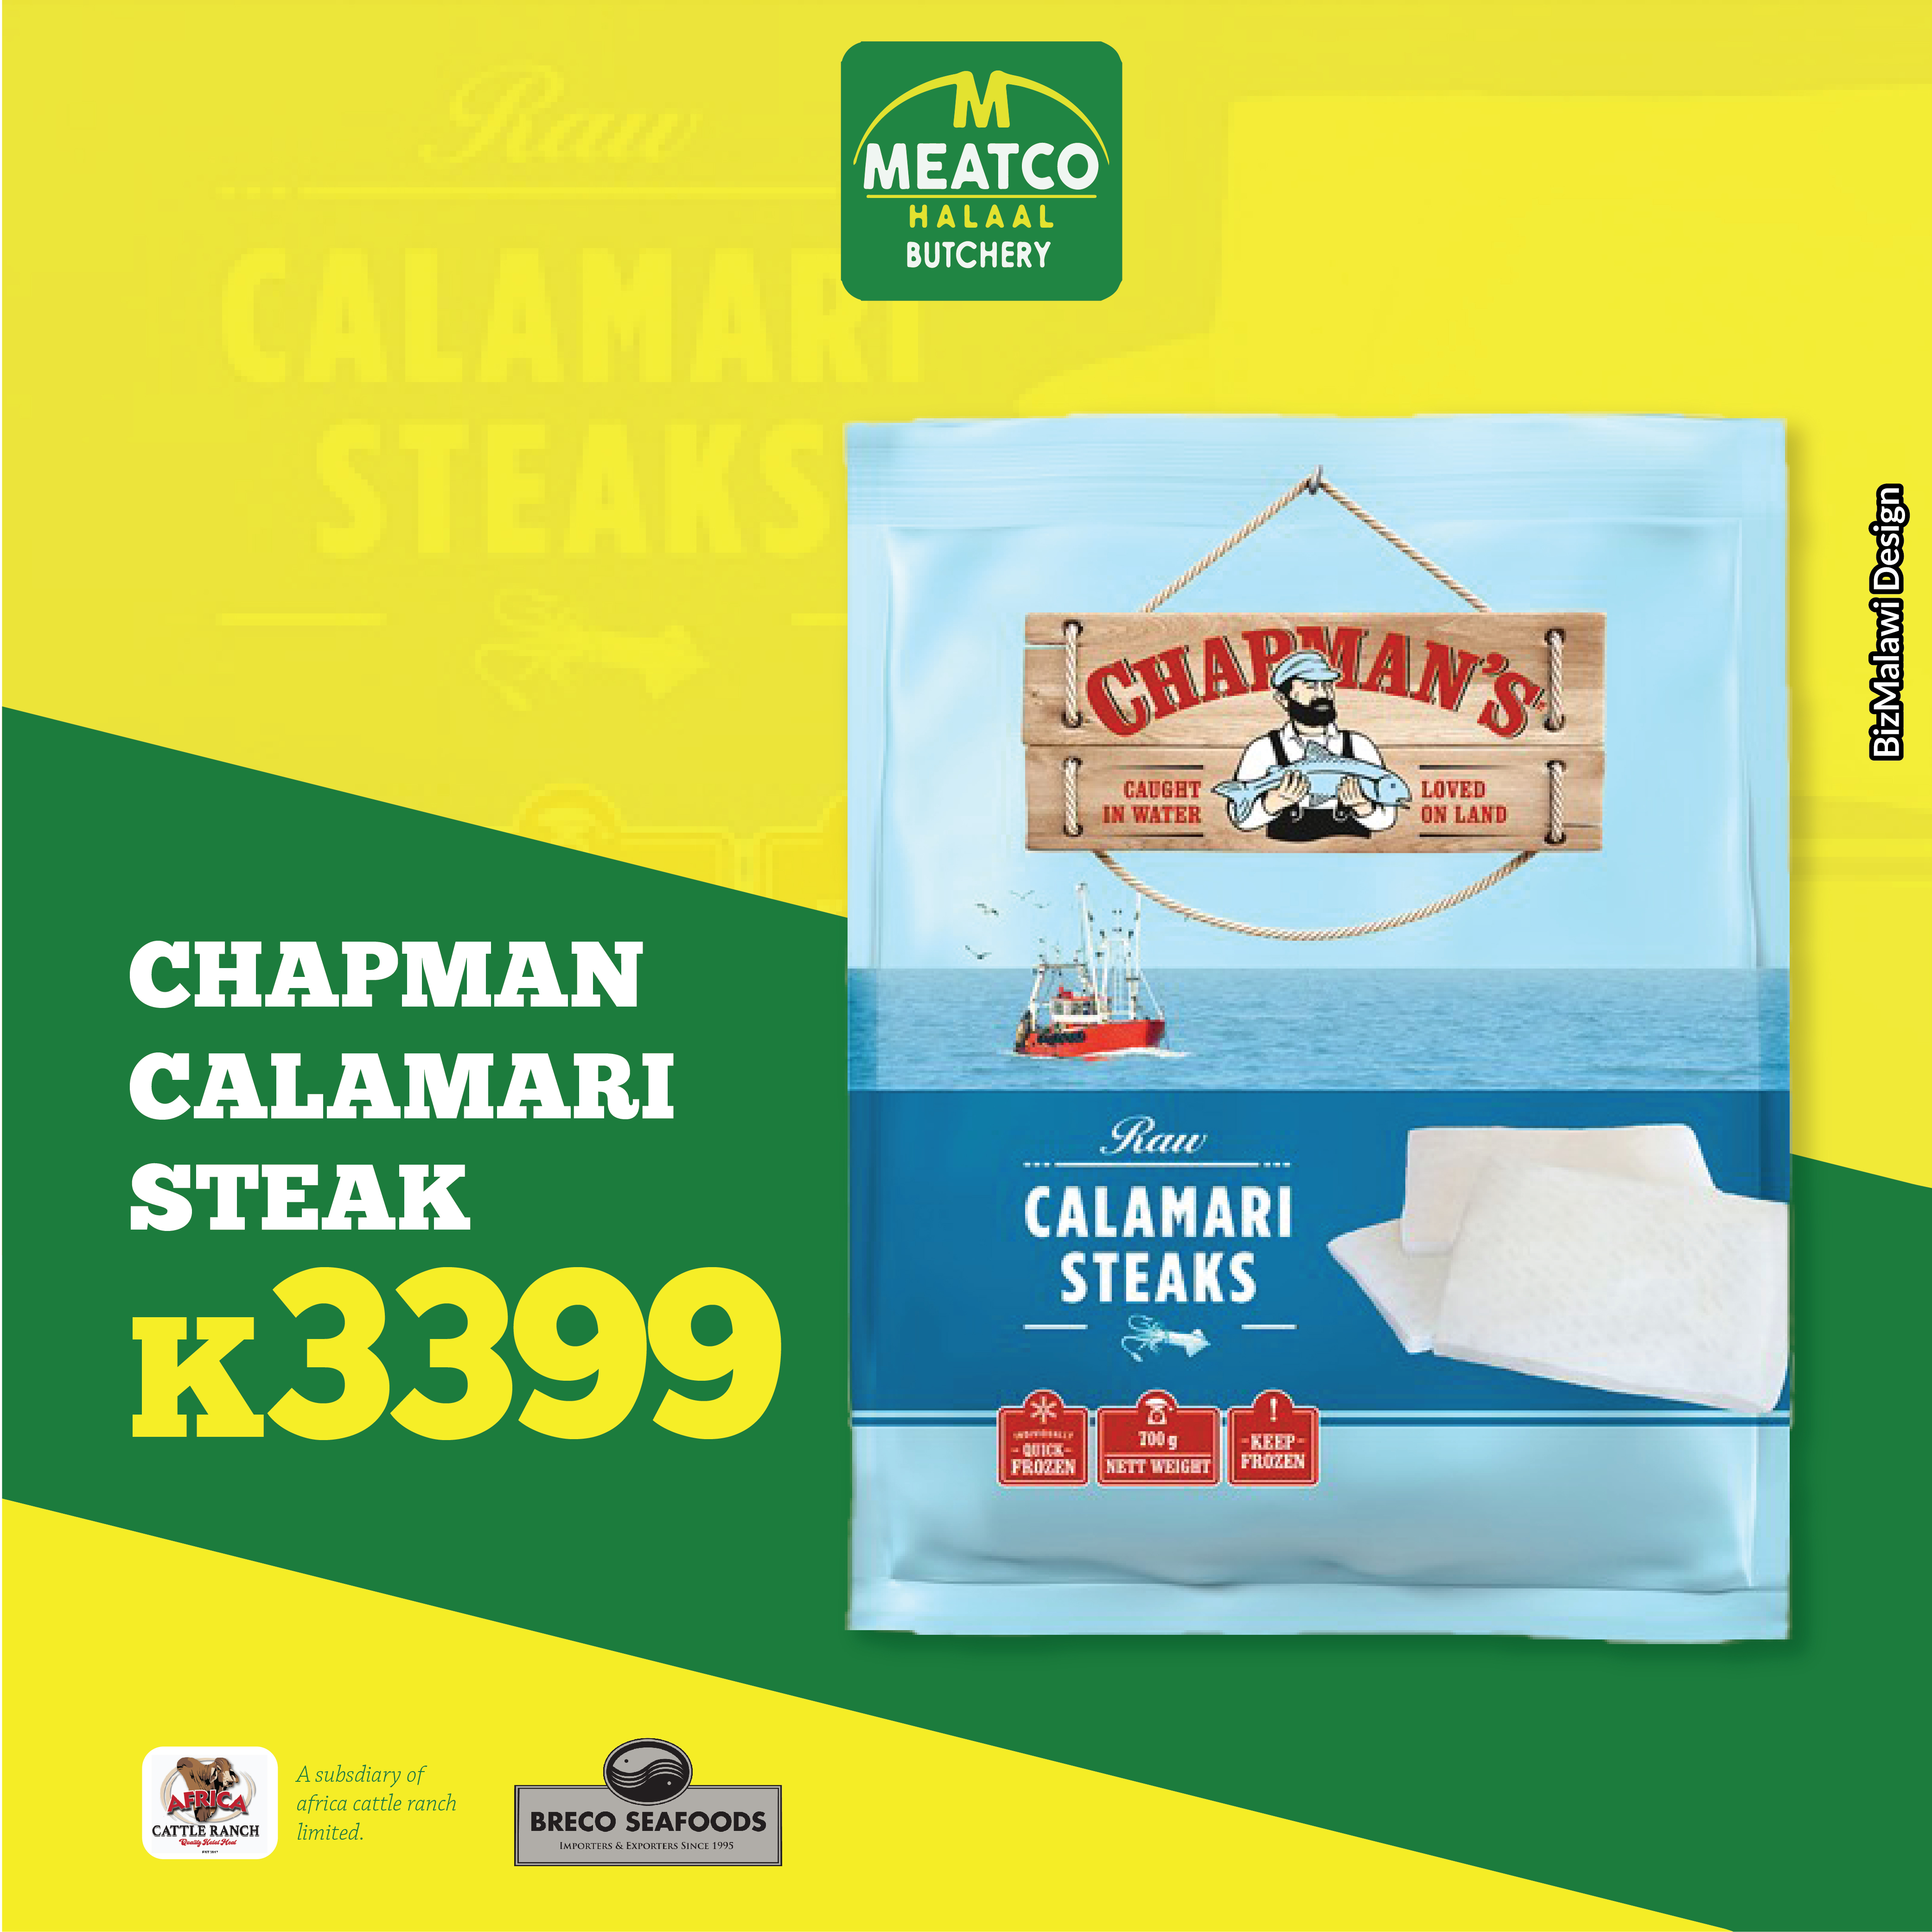 Enjoy Some #BestBuy Chapman Calamari Ste...